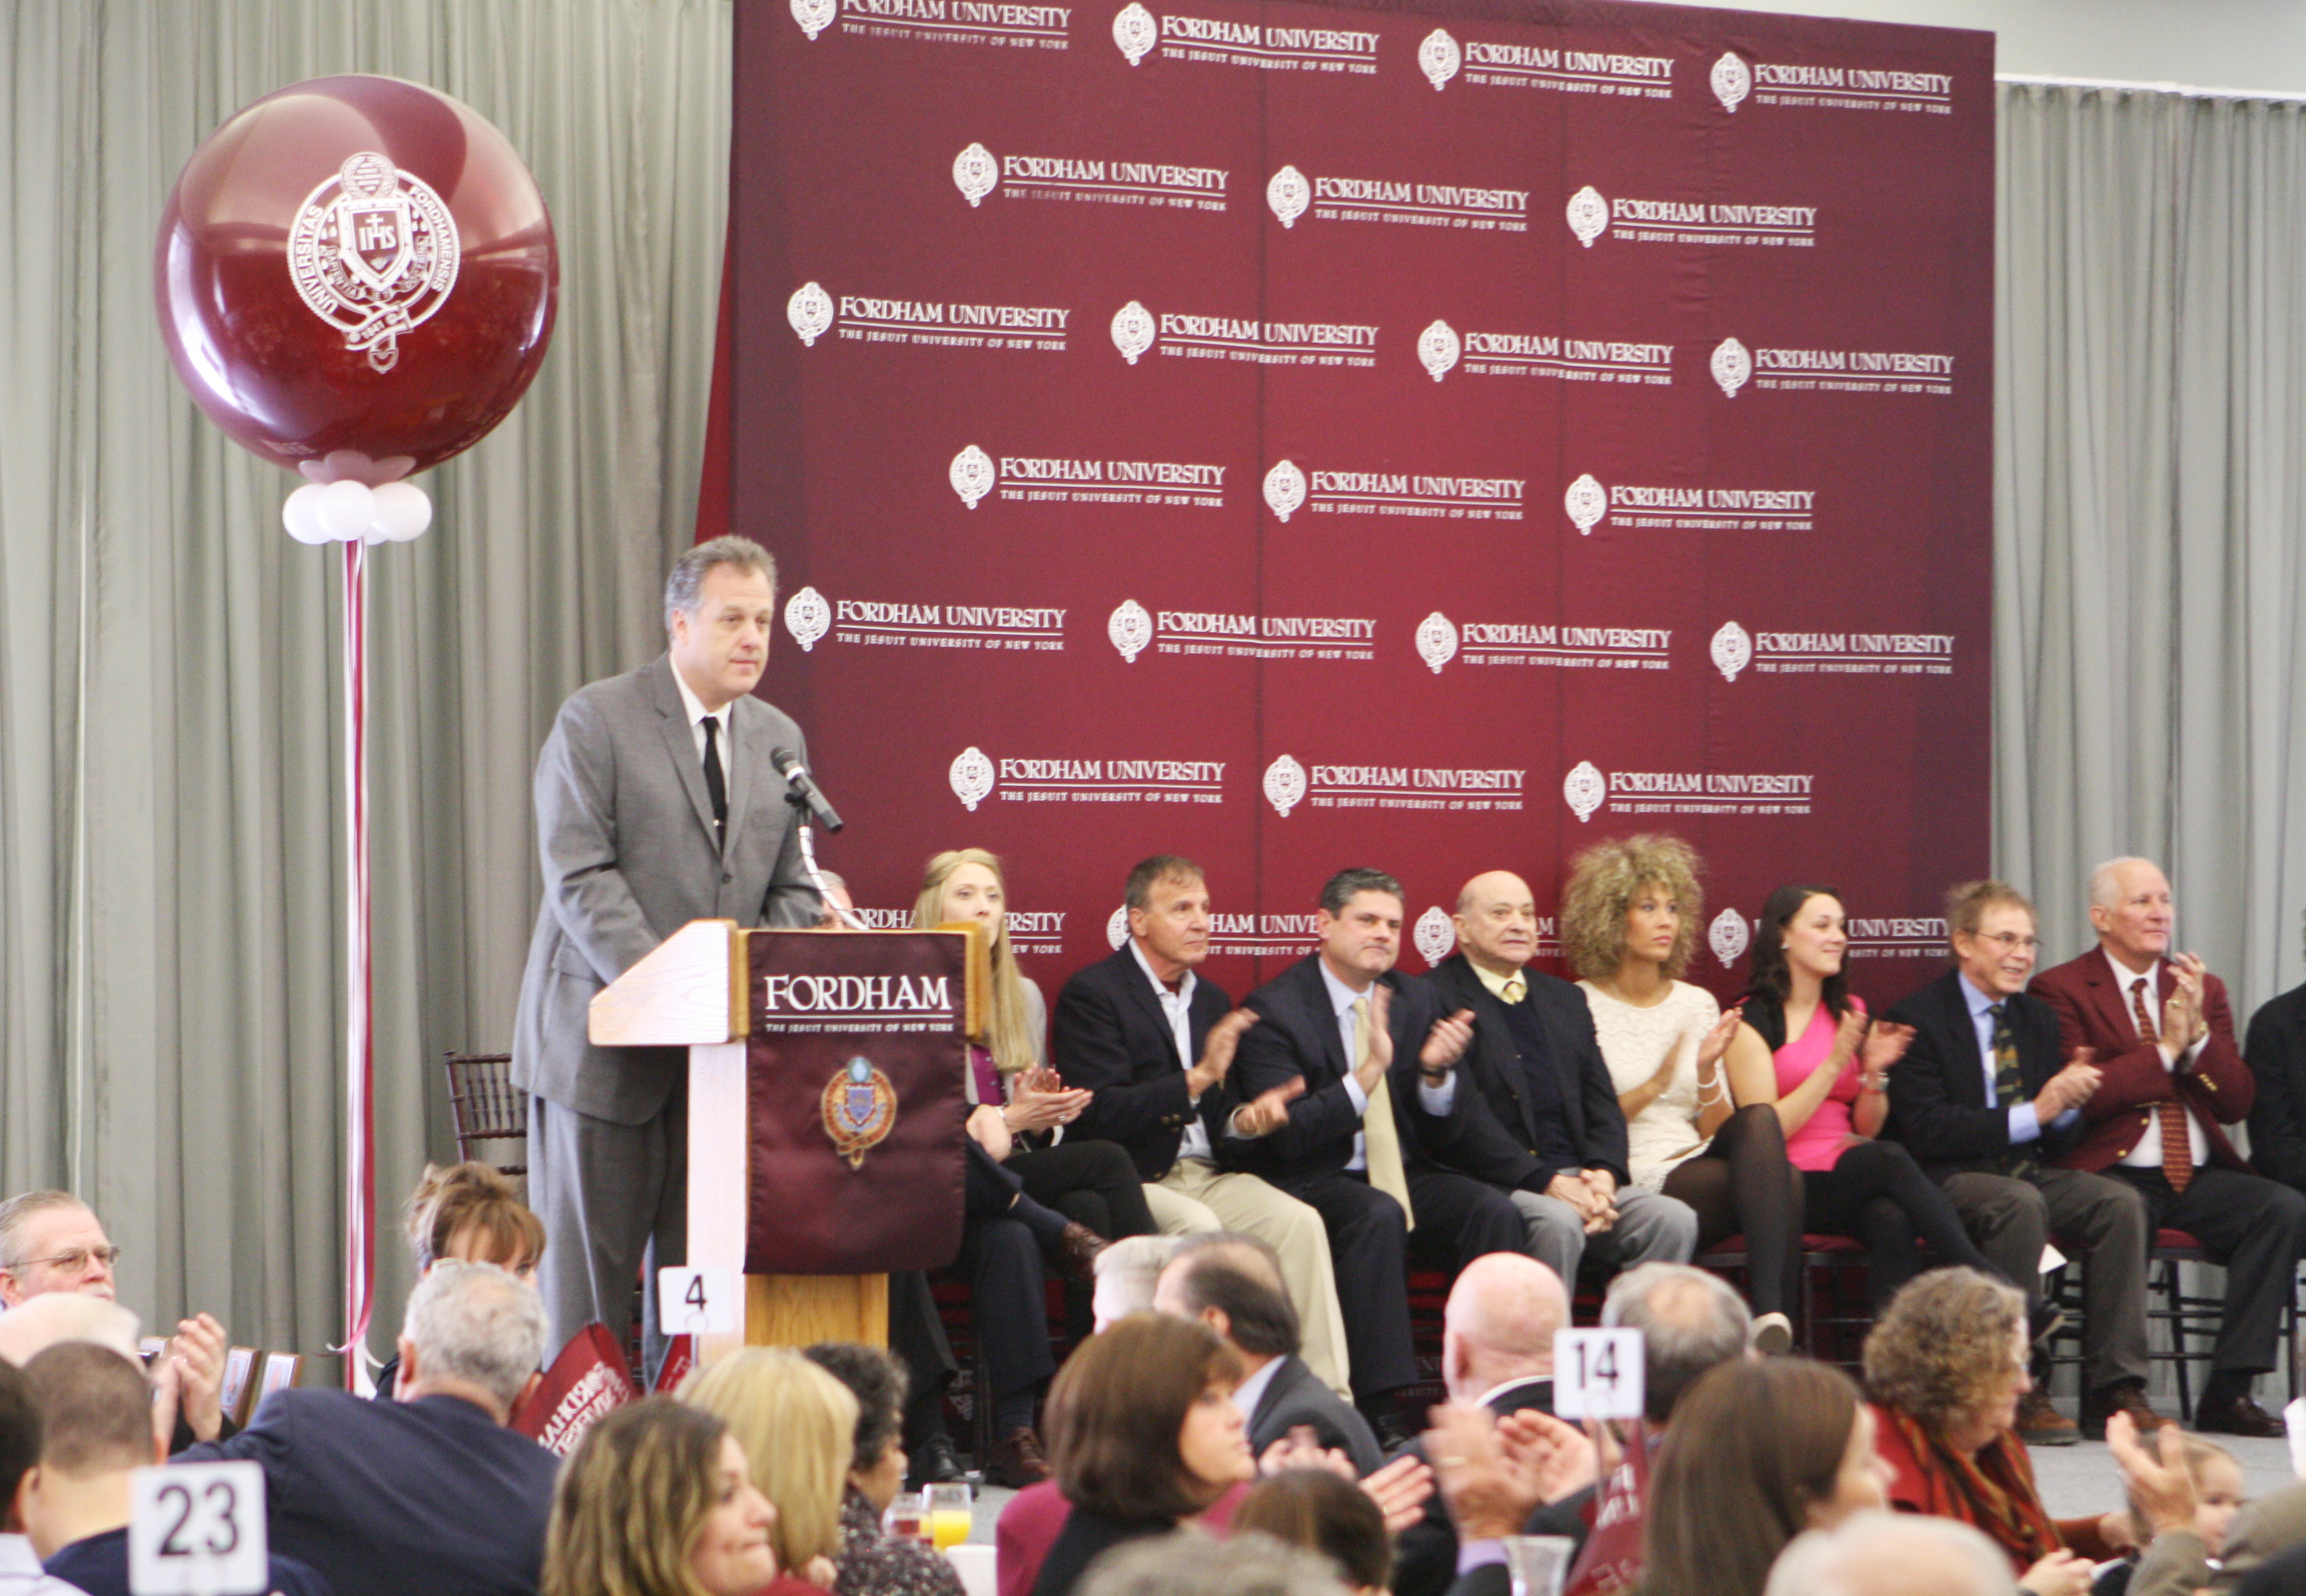 MICHAEL HAYES/THE RAM The 10 newest inductees to the Fordham Athletic Hall of Fame were honored at a ceremony on Saturday morning, as well as at the men's basketball game against Rhode Island later that day.